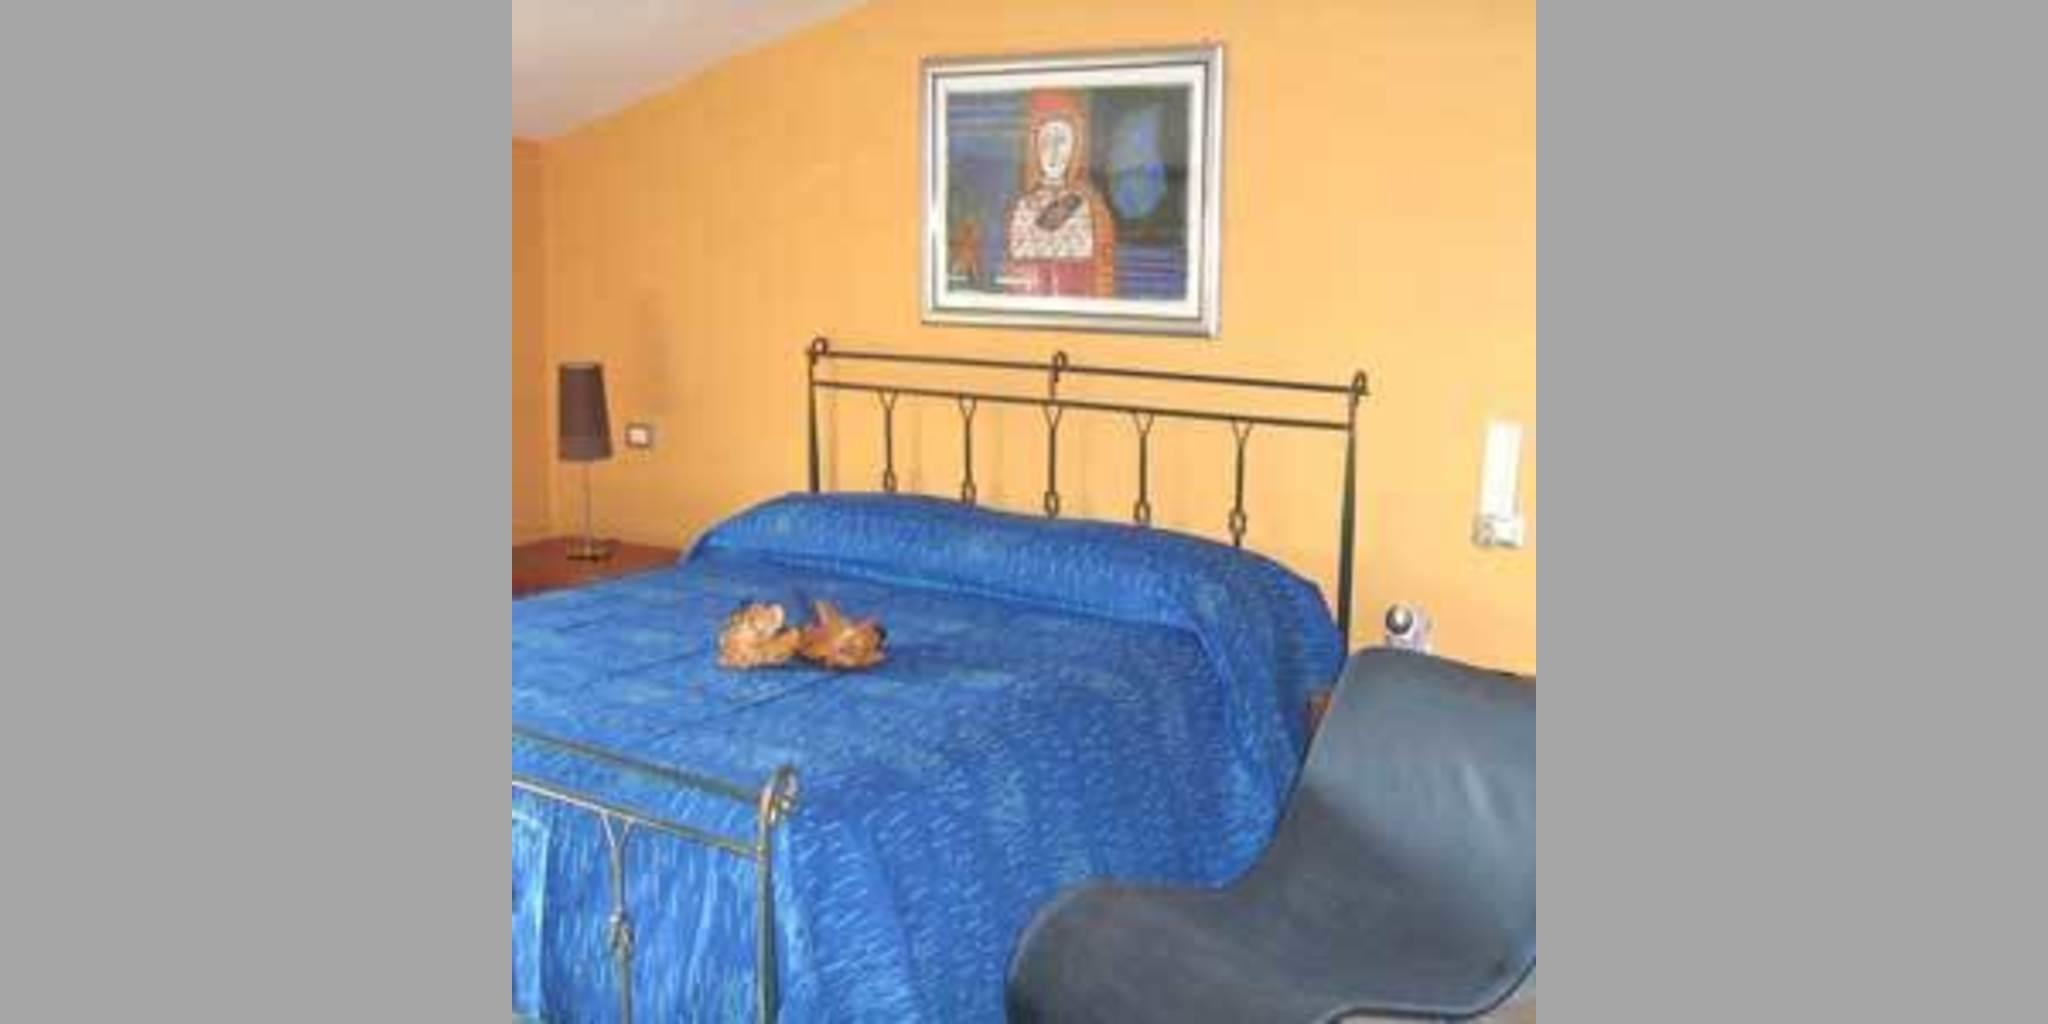 Bed & Breakfast Caserta - Unita_